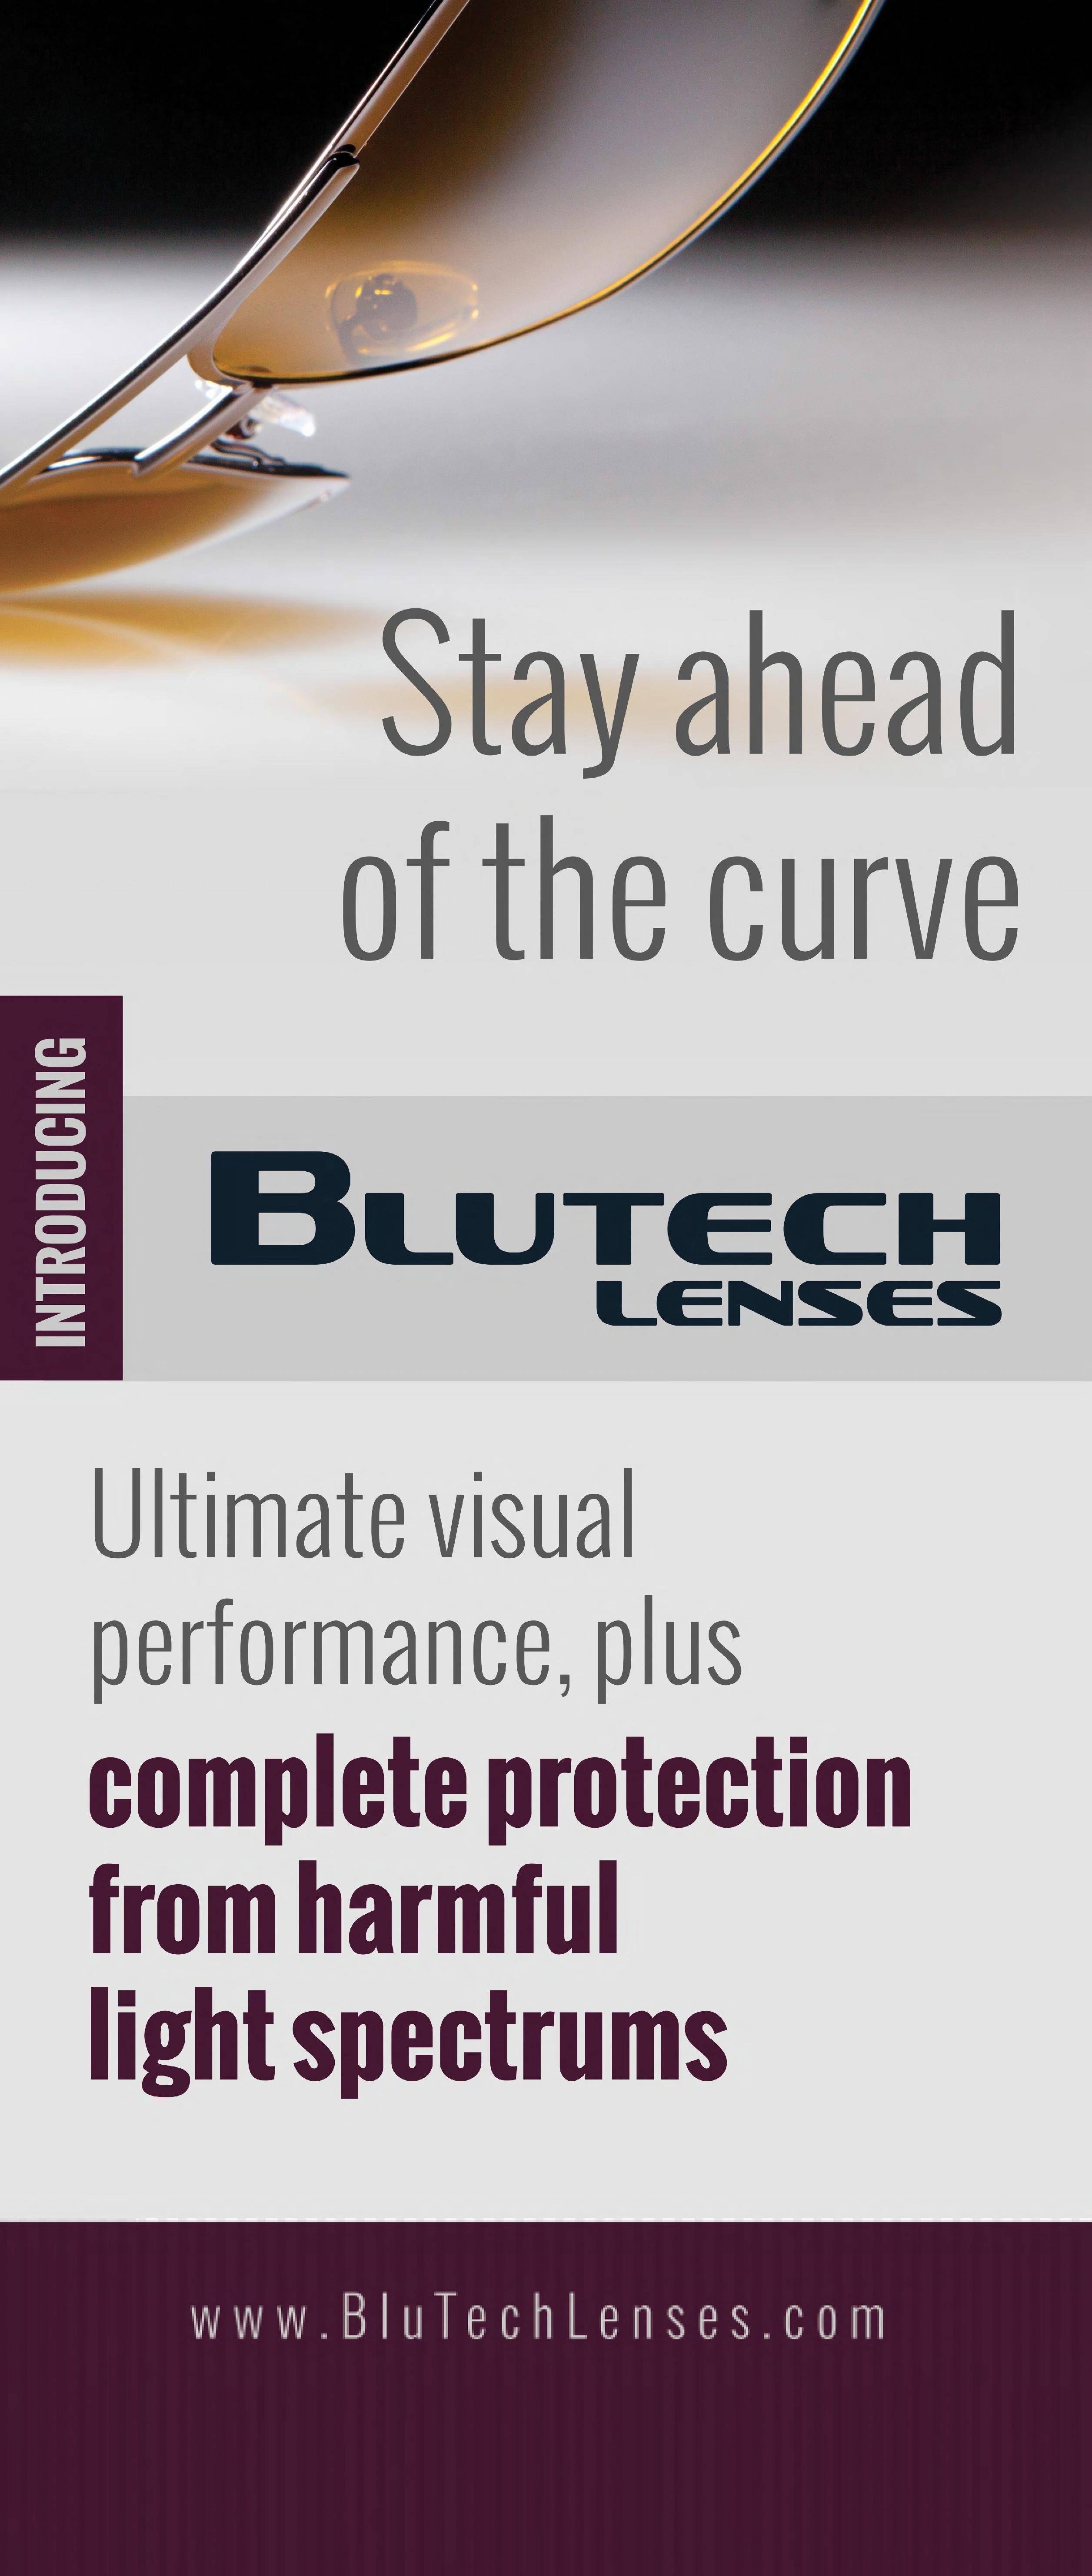 bluetech lenses for computer protection